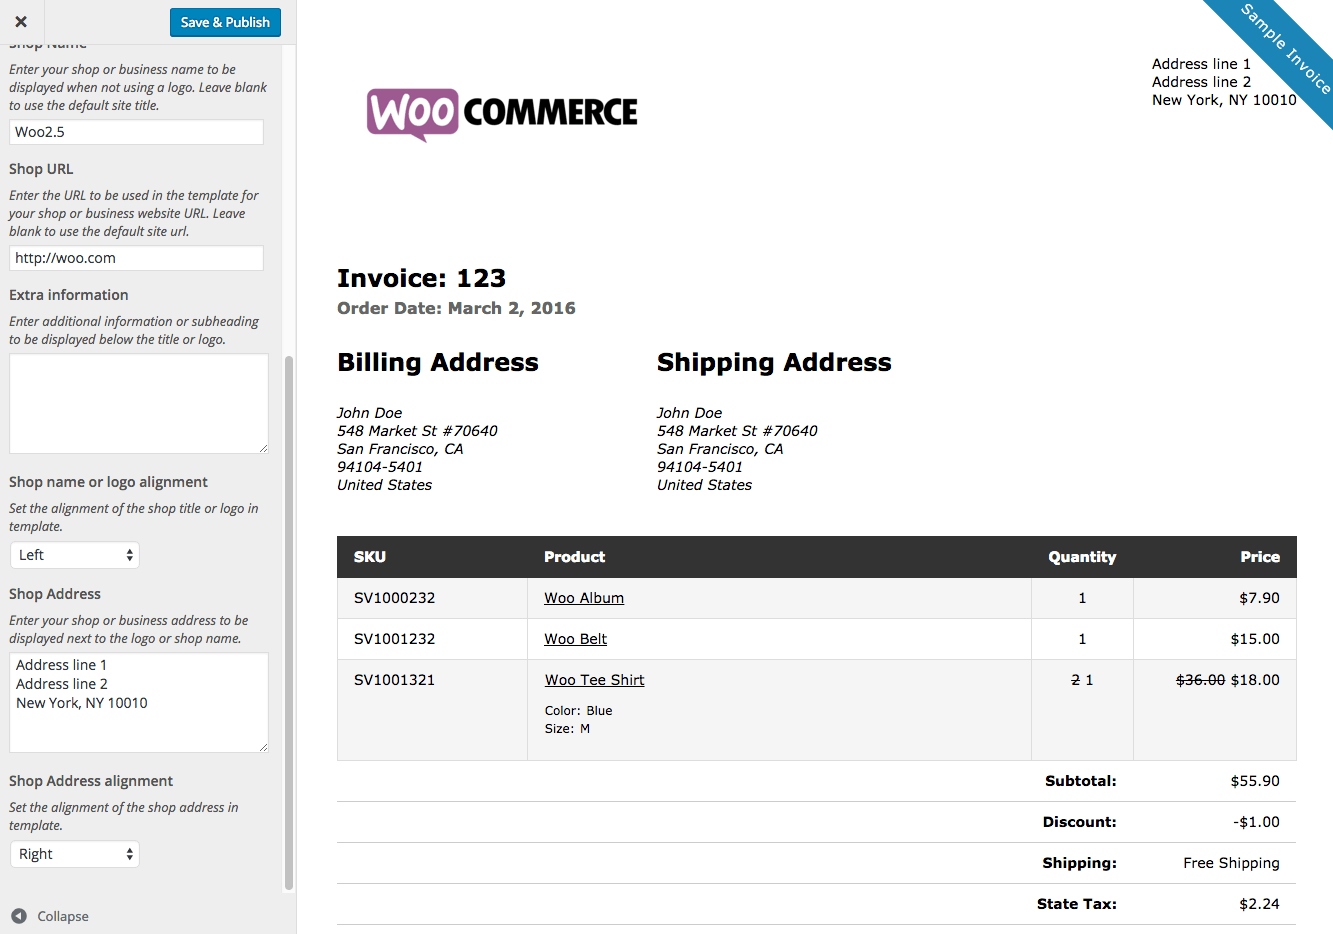 Hucareus  Pleasing Woocommerce Print Invoices Amp Packing Lists  Woocommerce Docs With Gorgeous Woocommerce Print Invoices  Packing Lists Customizer With Enchanting Cash Receipt System Also Receipt Form Sample In Addition Receipts Printable And Template For A Receipt Of Payment As Well As Sample Rent Receipt Template Additionally Proof Of Payment Receipt Template From Docswoocommercecom With Hucareus  Gorgeous Woocommerce Print Invoices Amp Packing Lists  Woocommerce Docs With Enchanting Woocommerce Print Invoices  Packing Lists Customizer And Pleasing Cash Receipt System Also Receipt Form Sample In Addition Receipts Printable From Docswoocommercecom